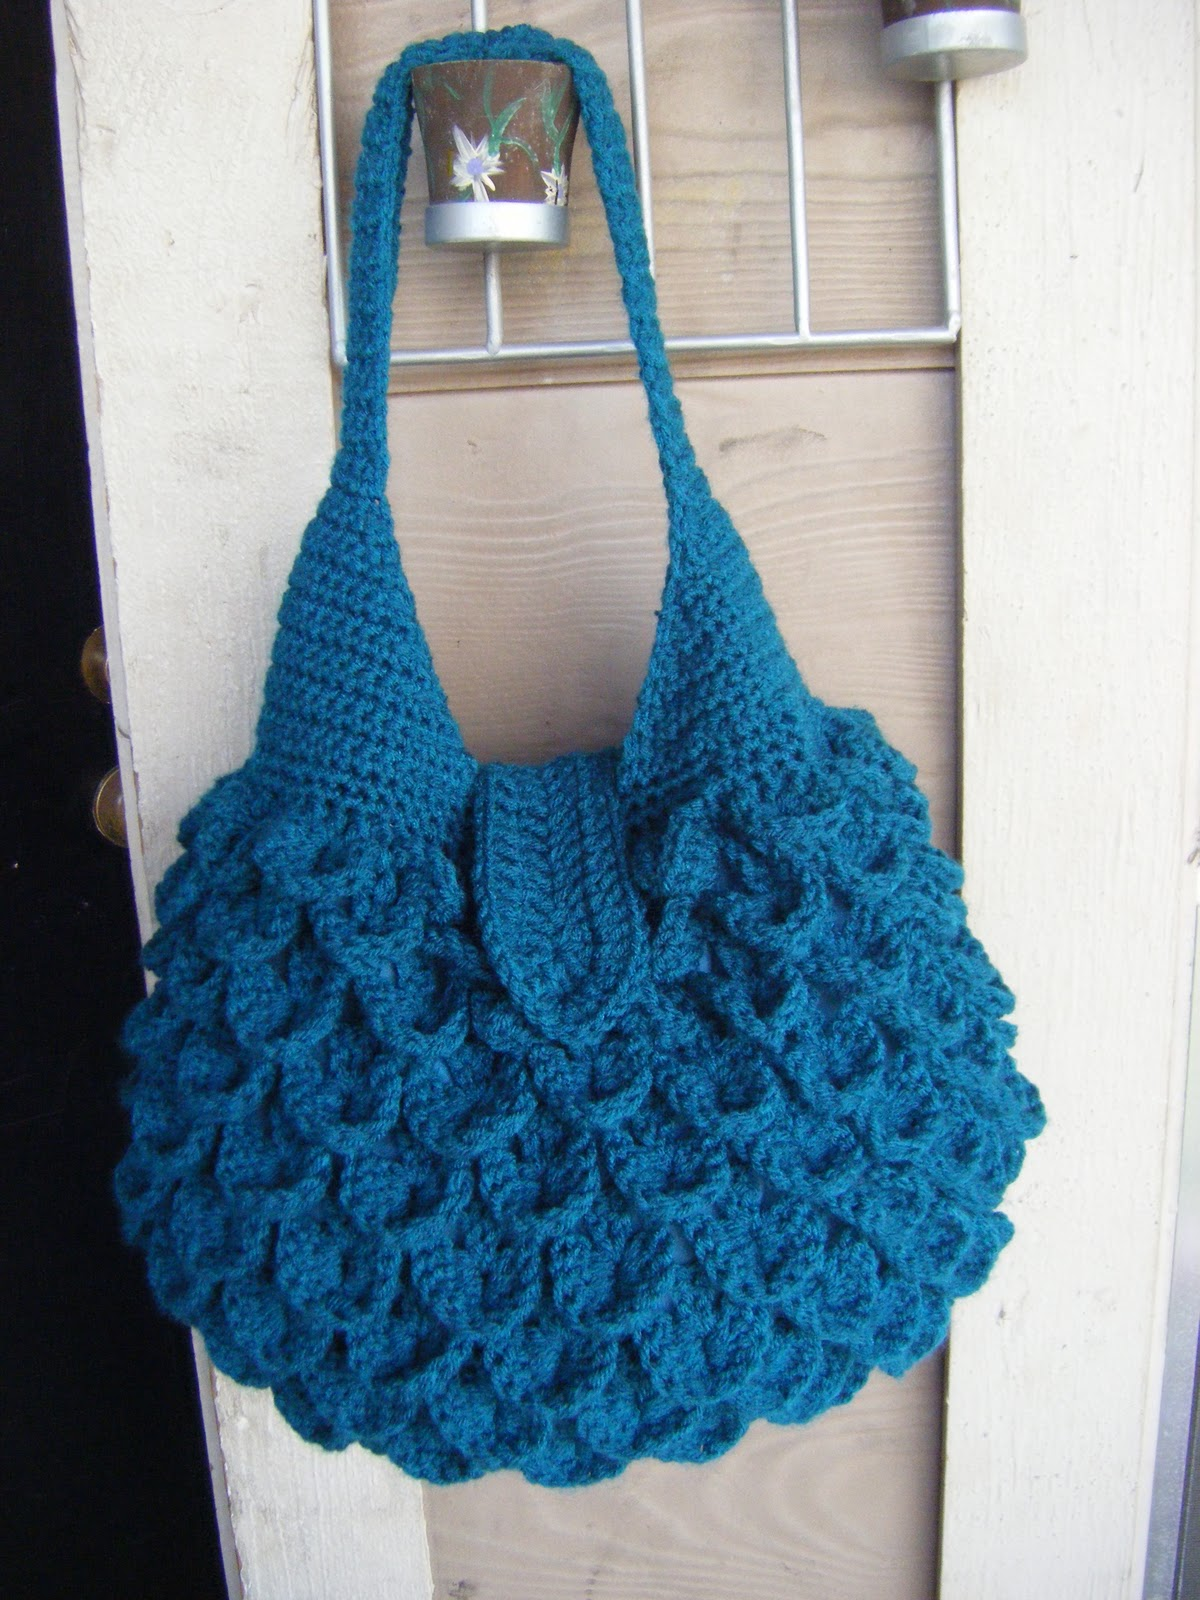 Crochet Communion Bag Pattern : Best Patterns: Crocodile Crochet Bag PATTERN